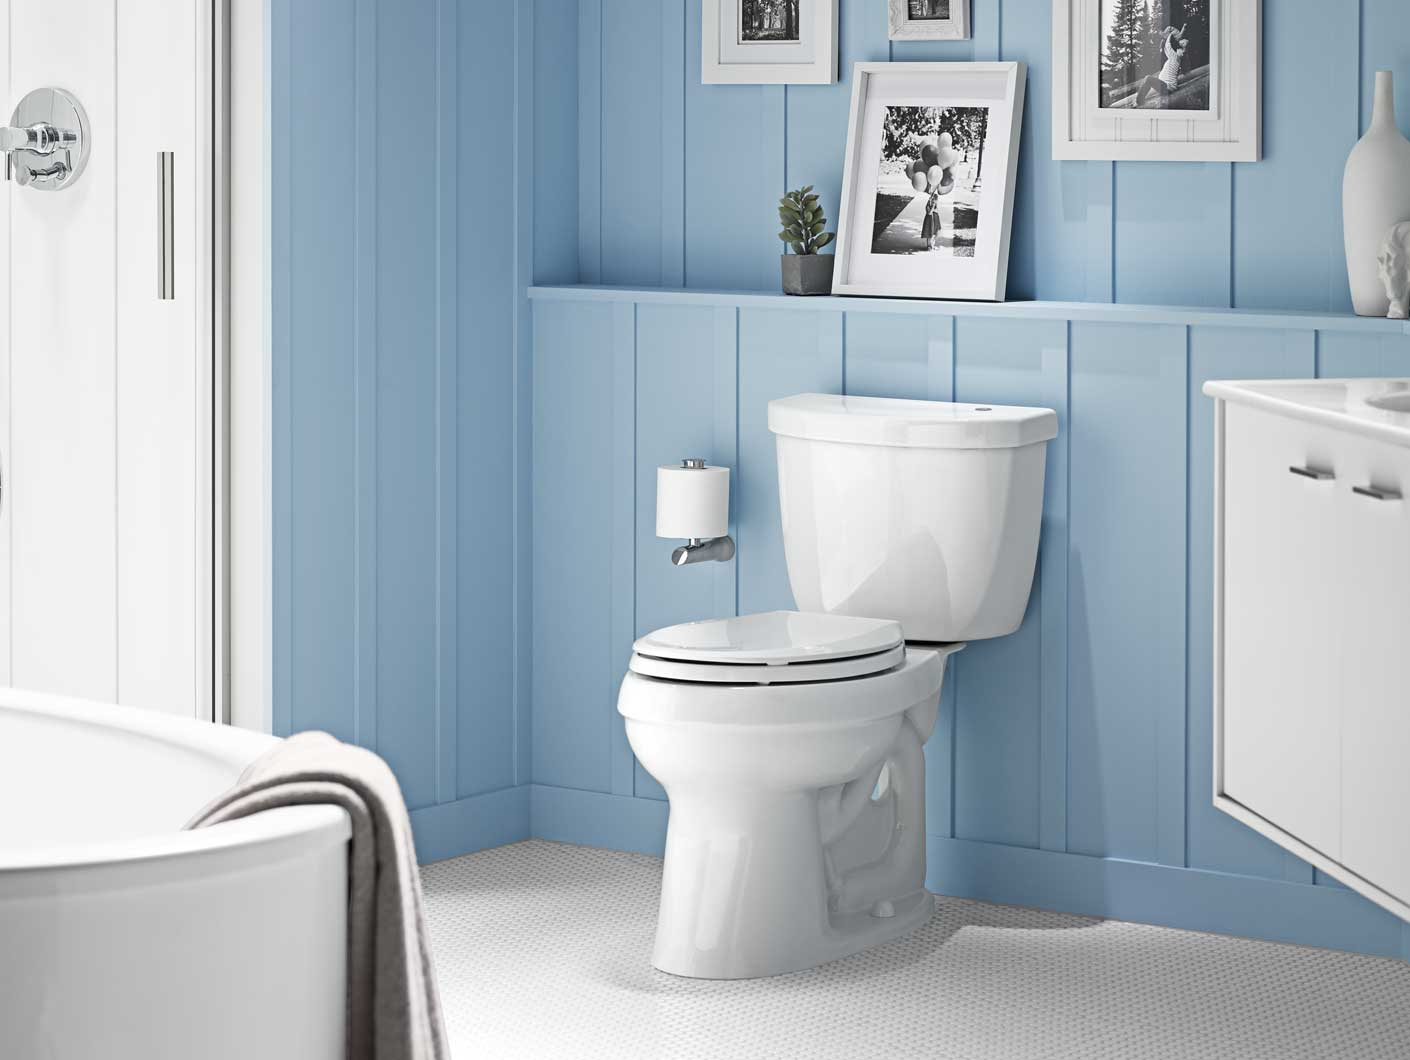 Kohler Introduces A Touchless Toilet Without A Lever